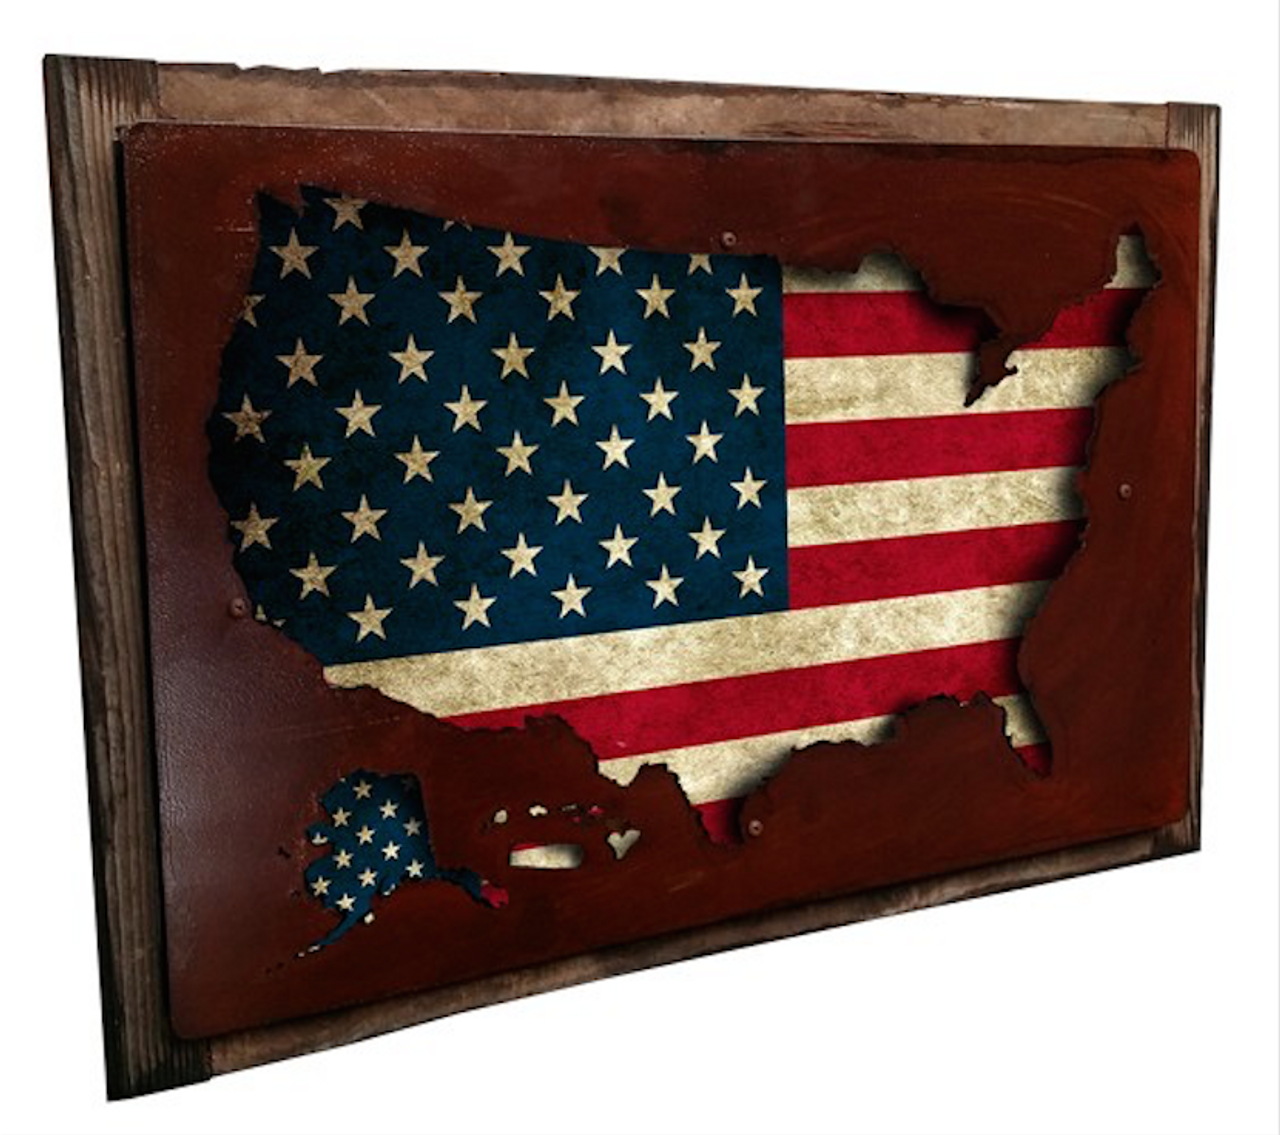 D USA MAP DISPLAY FRAMED WALL ART PinUps For Vets Store - Framed us map